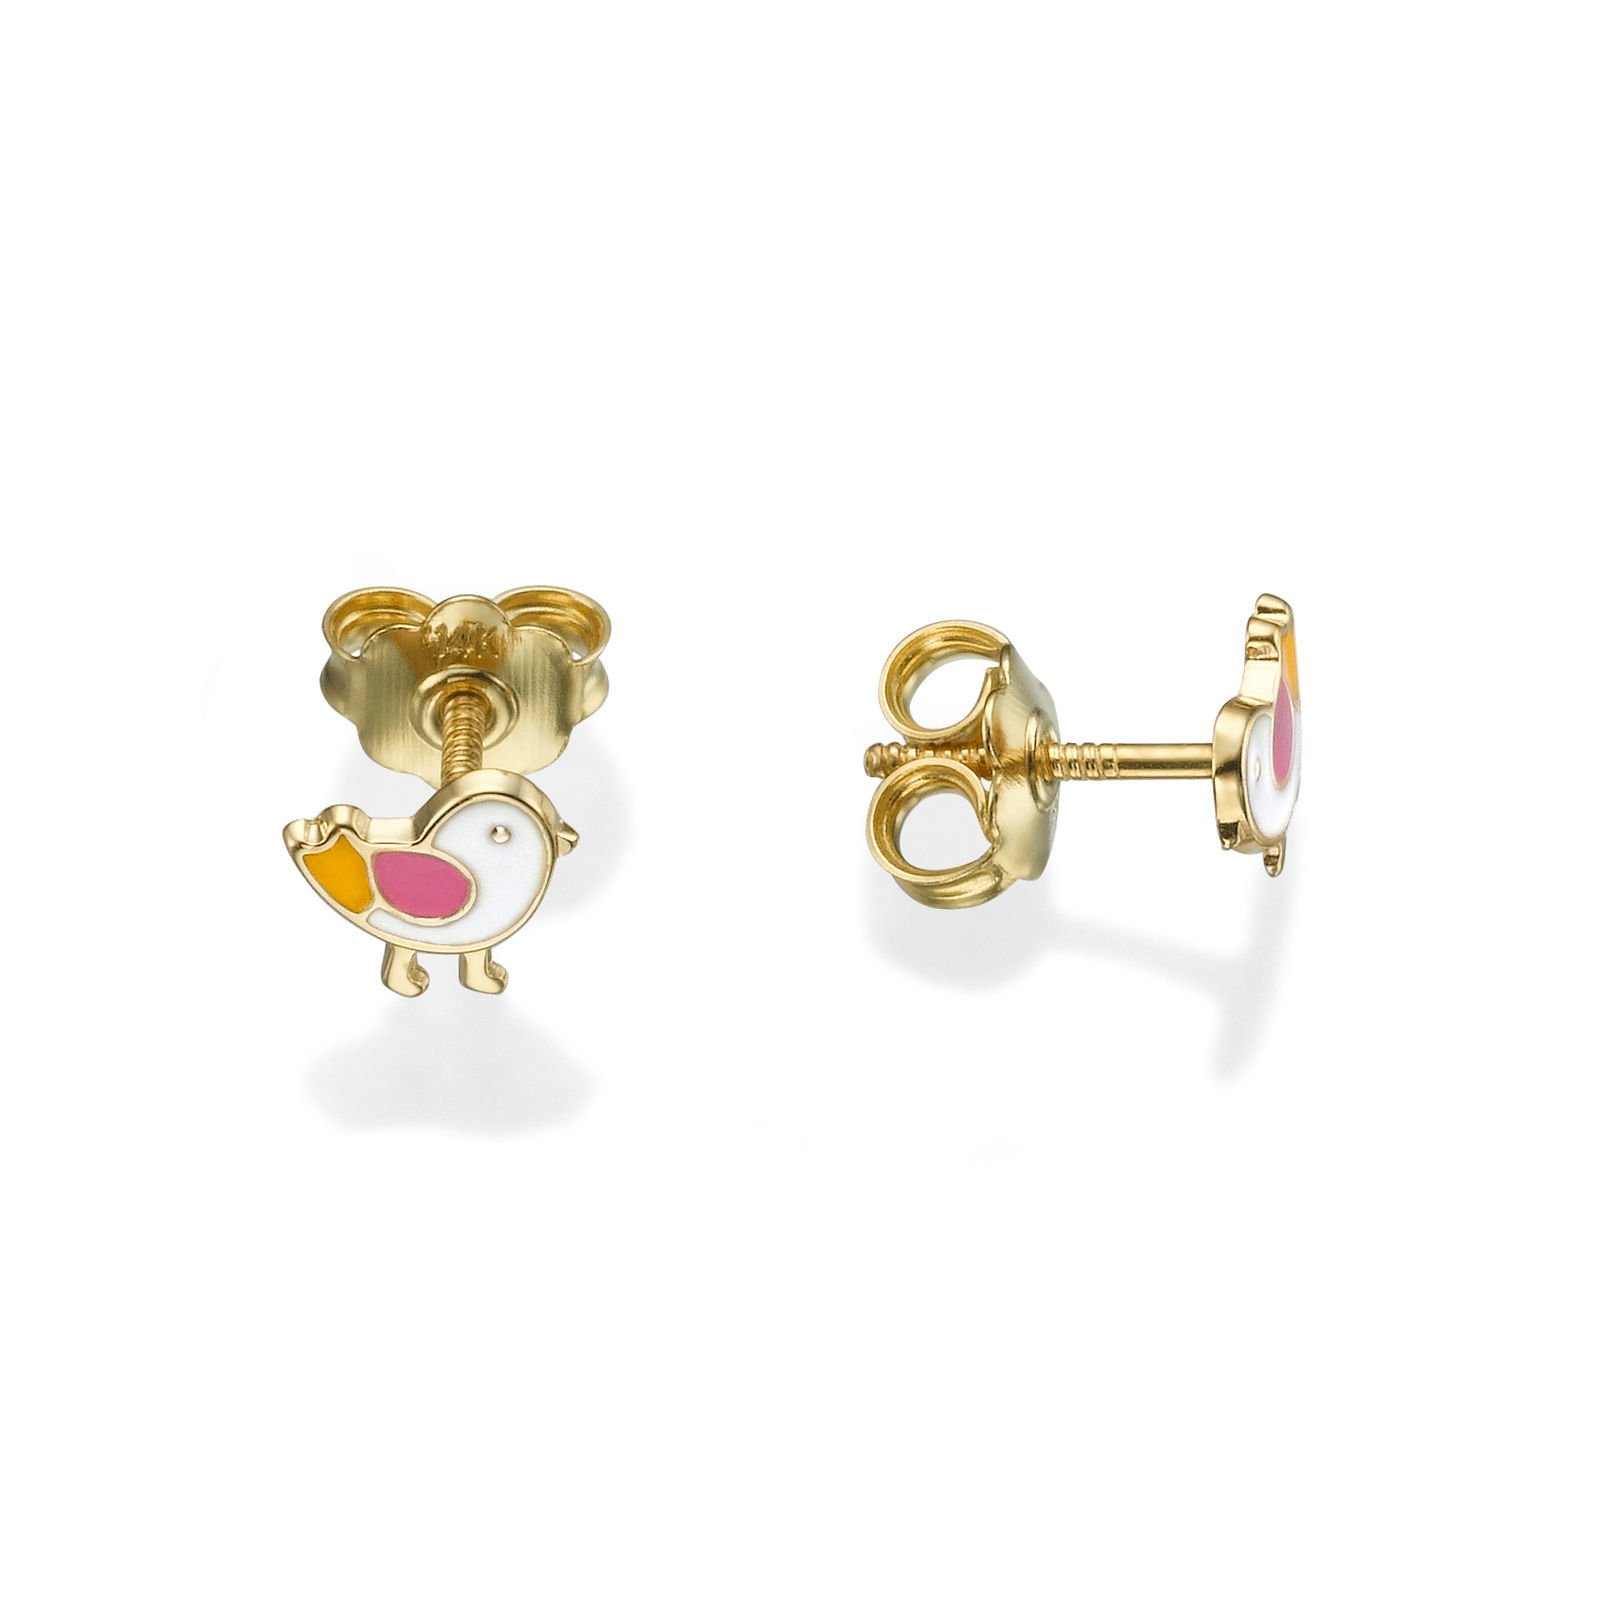 14K Fine Yellow Gold Enamel Chick Screw Back Stud Earrings for Baby Girls Kids Children Gift by youme Gold Jewelry (Image #3)